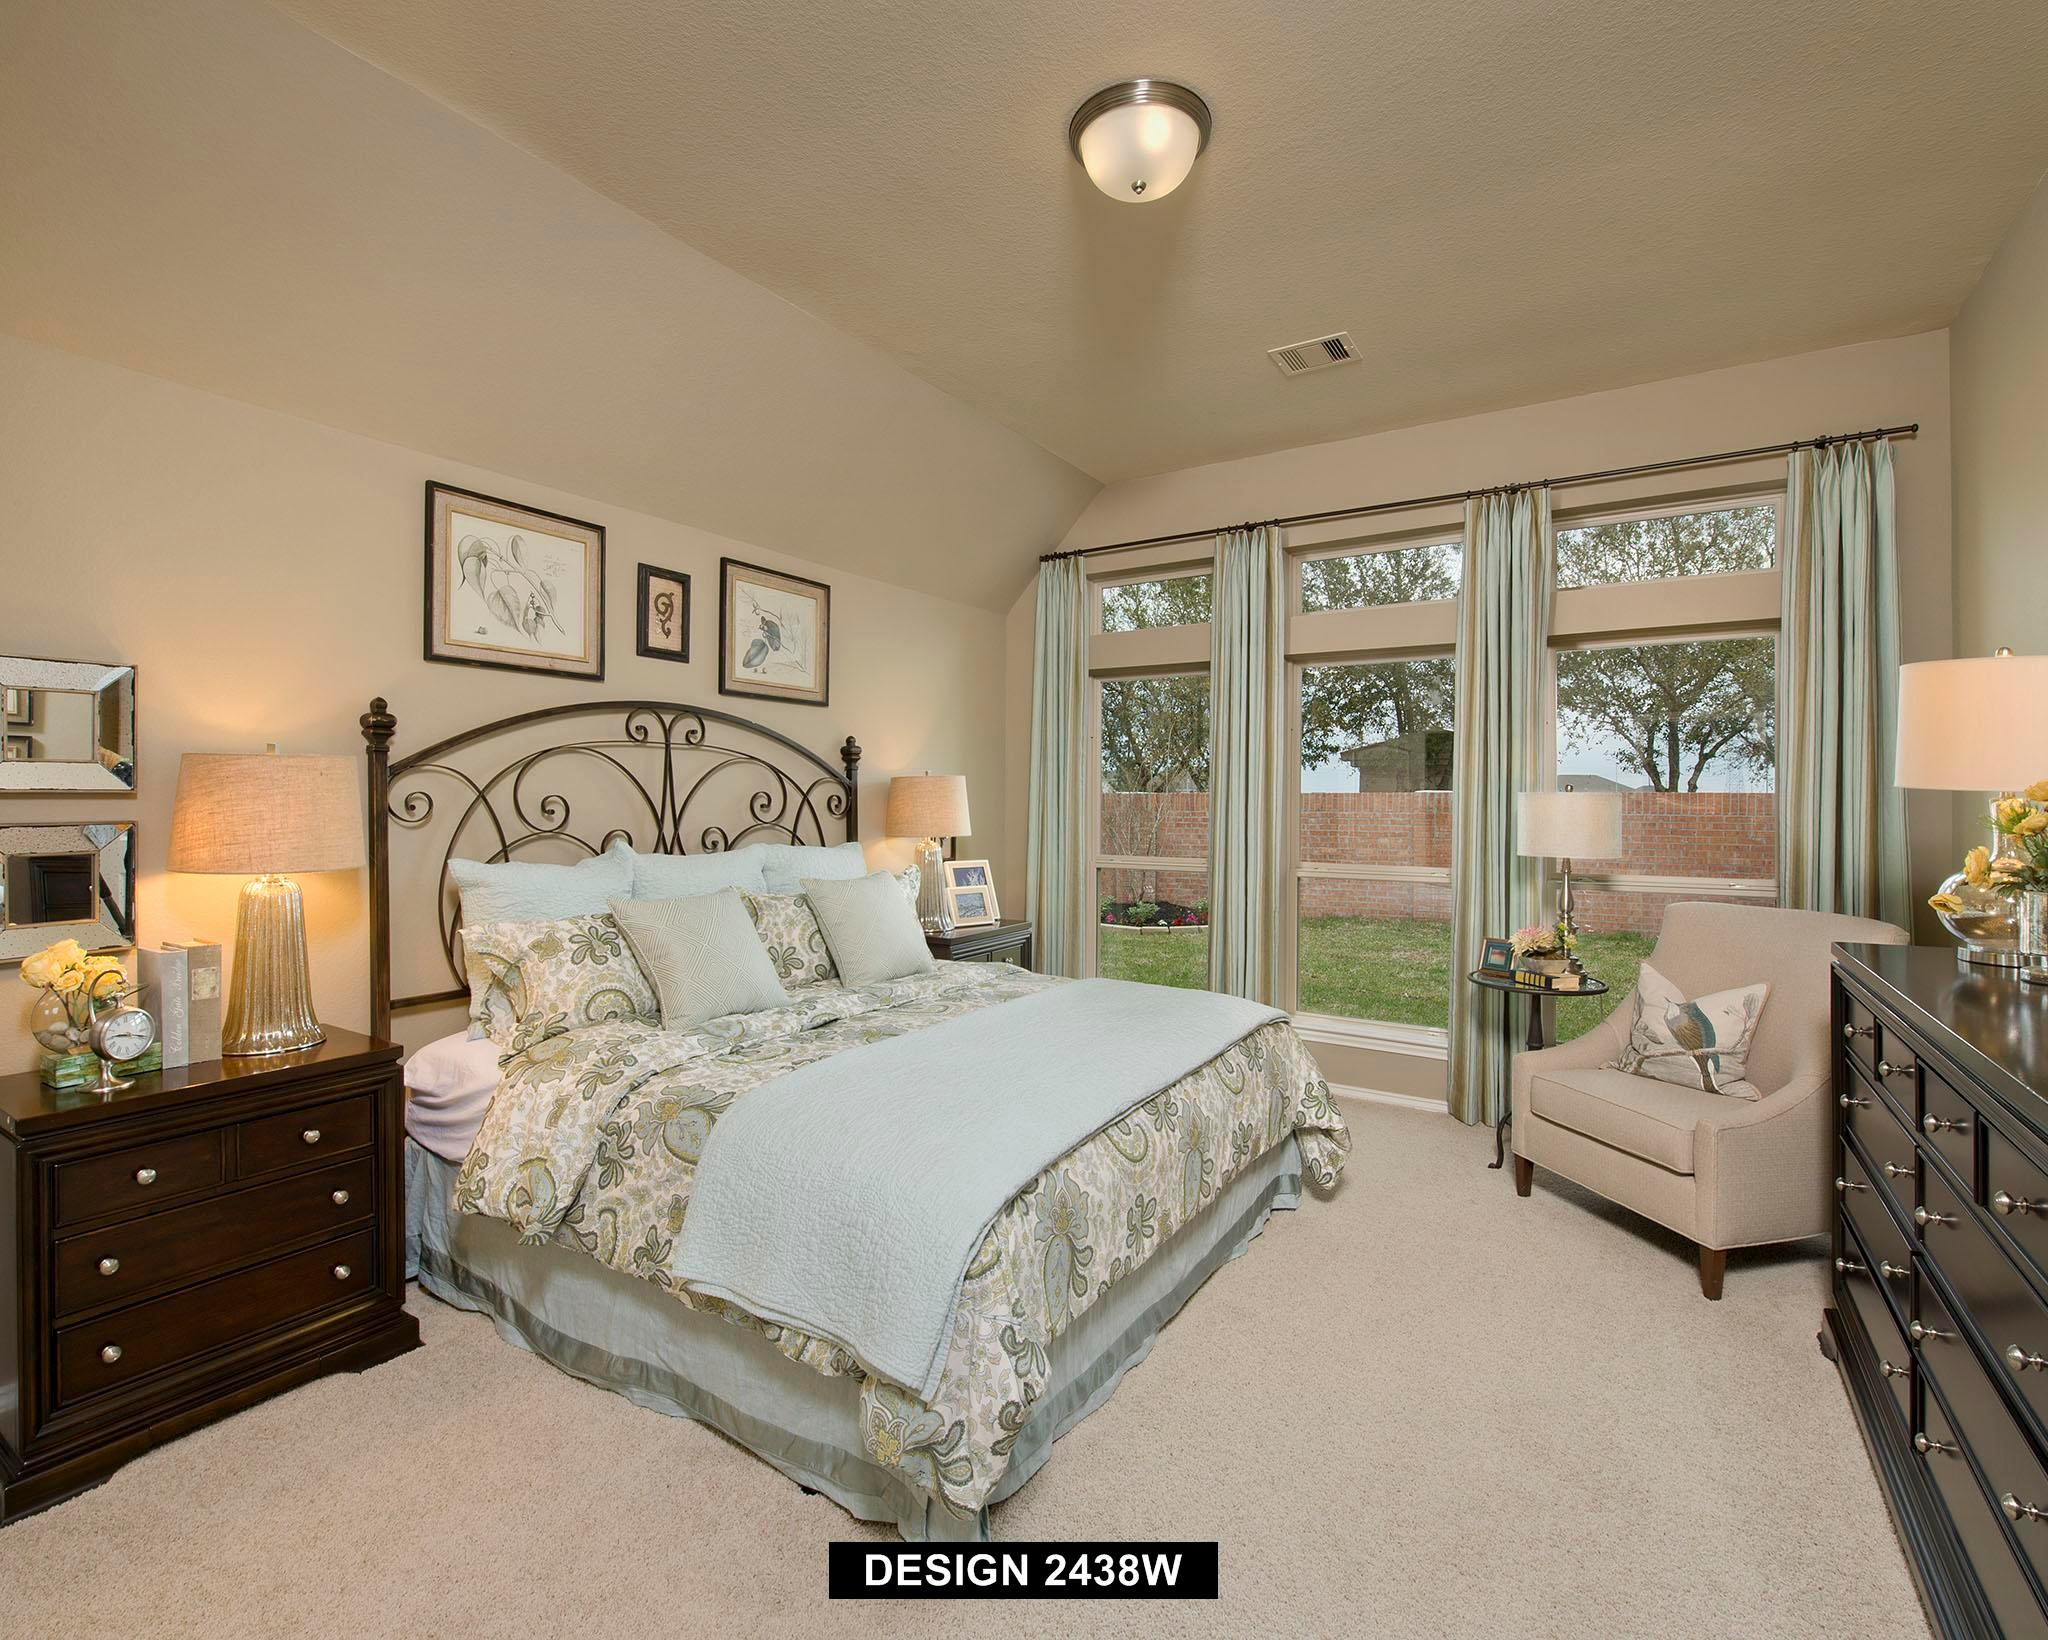 Bedroom featured in the 2438W By Perry Homes in Houston, TX